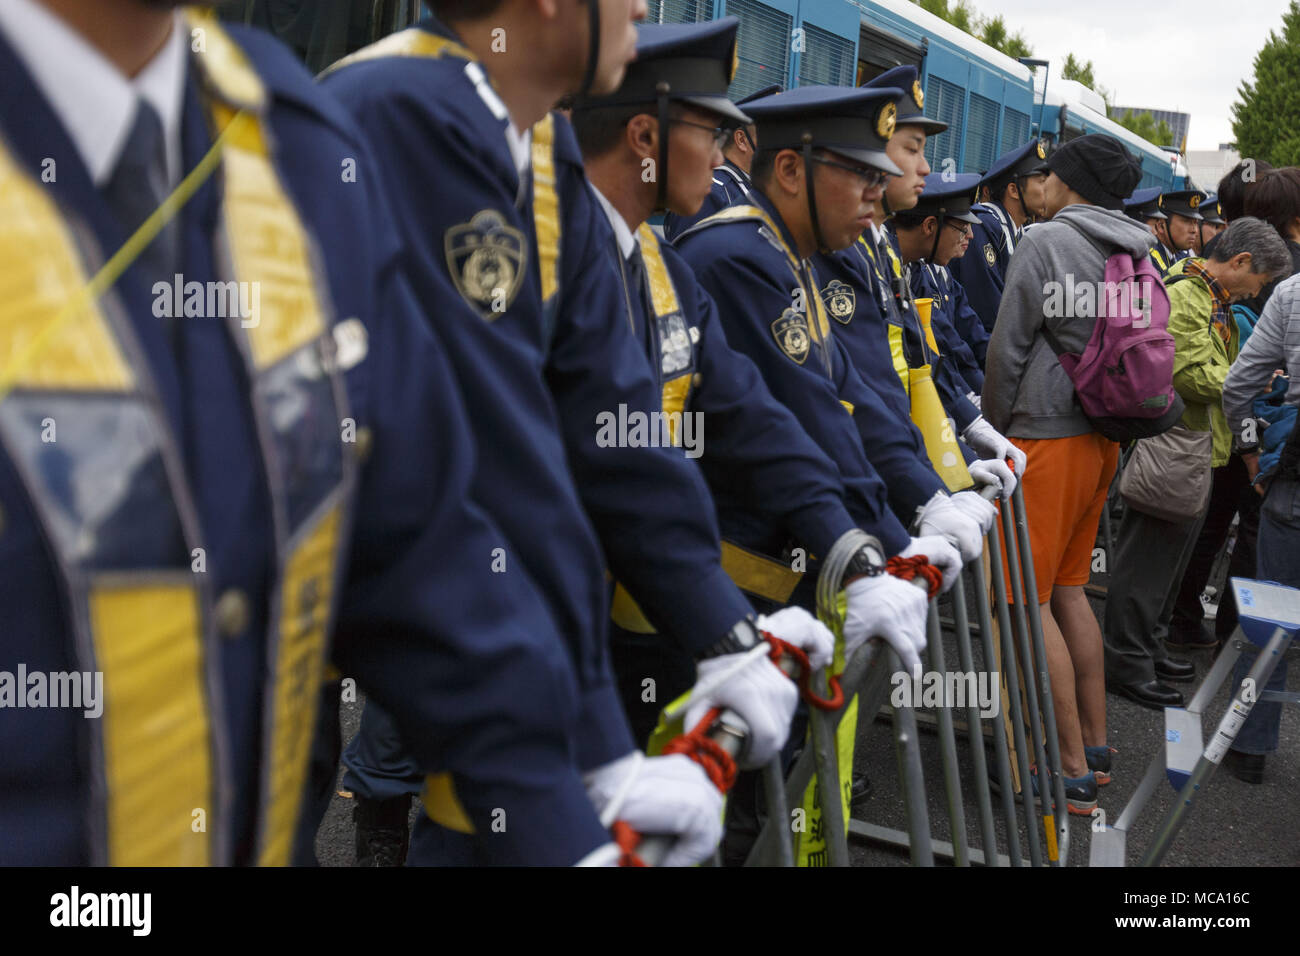 Tokyo, Japan. 14th Apr, 2018. Tokyo Metropolitan Police restraints the access to the National Diet Building during a protest in Tokyo, Japan. Organizers claim about 30,000 protesters joined the rally demanding Abe's resignation for the Moritomo Gakuen and Kake Gakuen scandals. Credit: Rodrigo Reyes Marin/via ZUMA Wire/ZUMA Wire/Alamy Live News - Stock Image